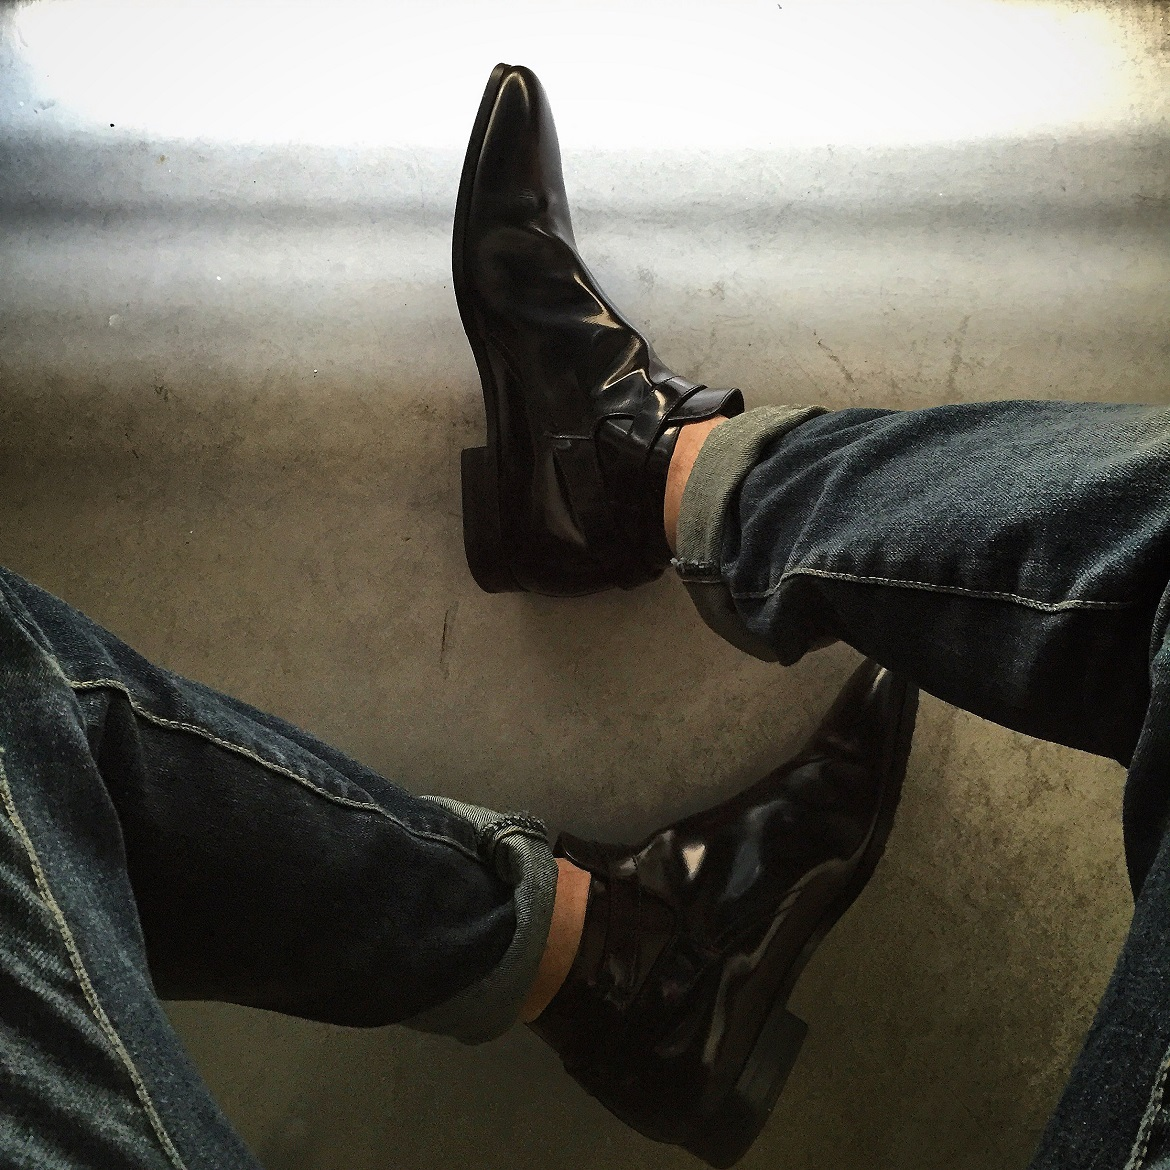 Black shiny leather ankle boots by Tod's - Jeans by H&M.